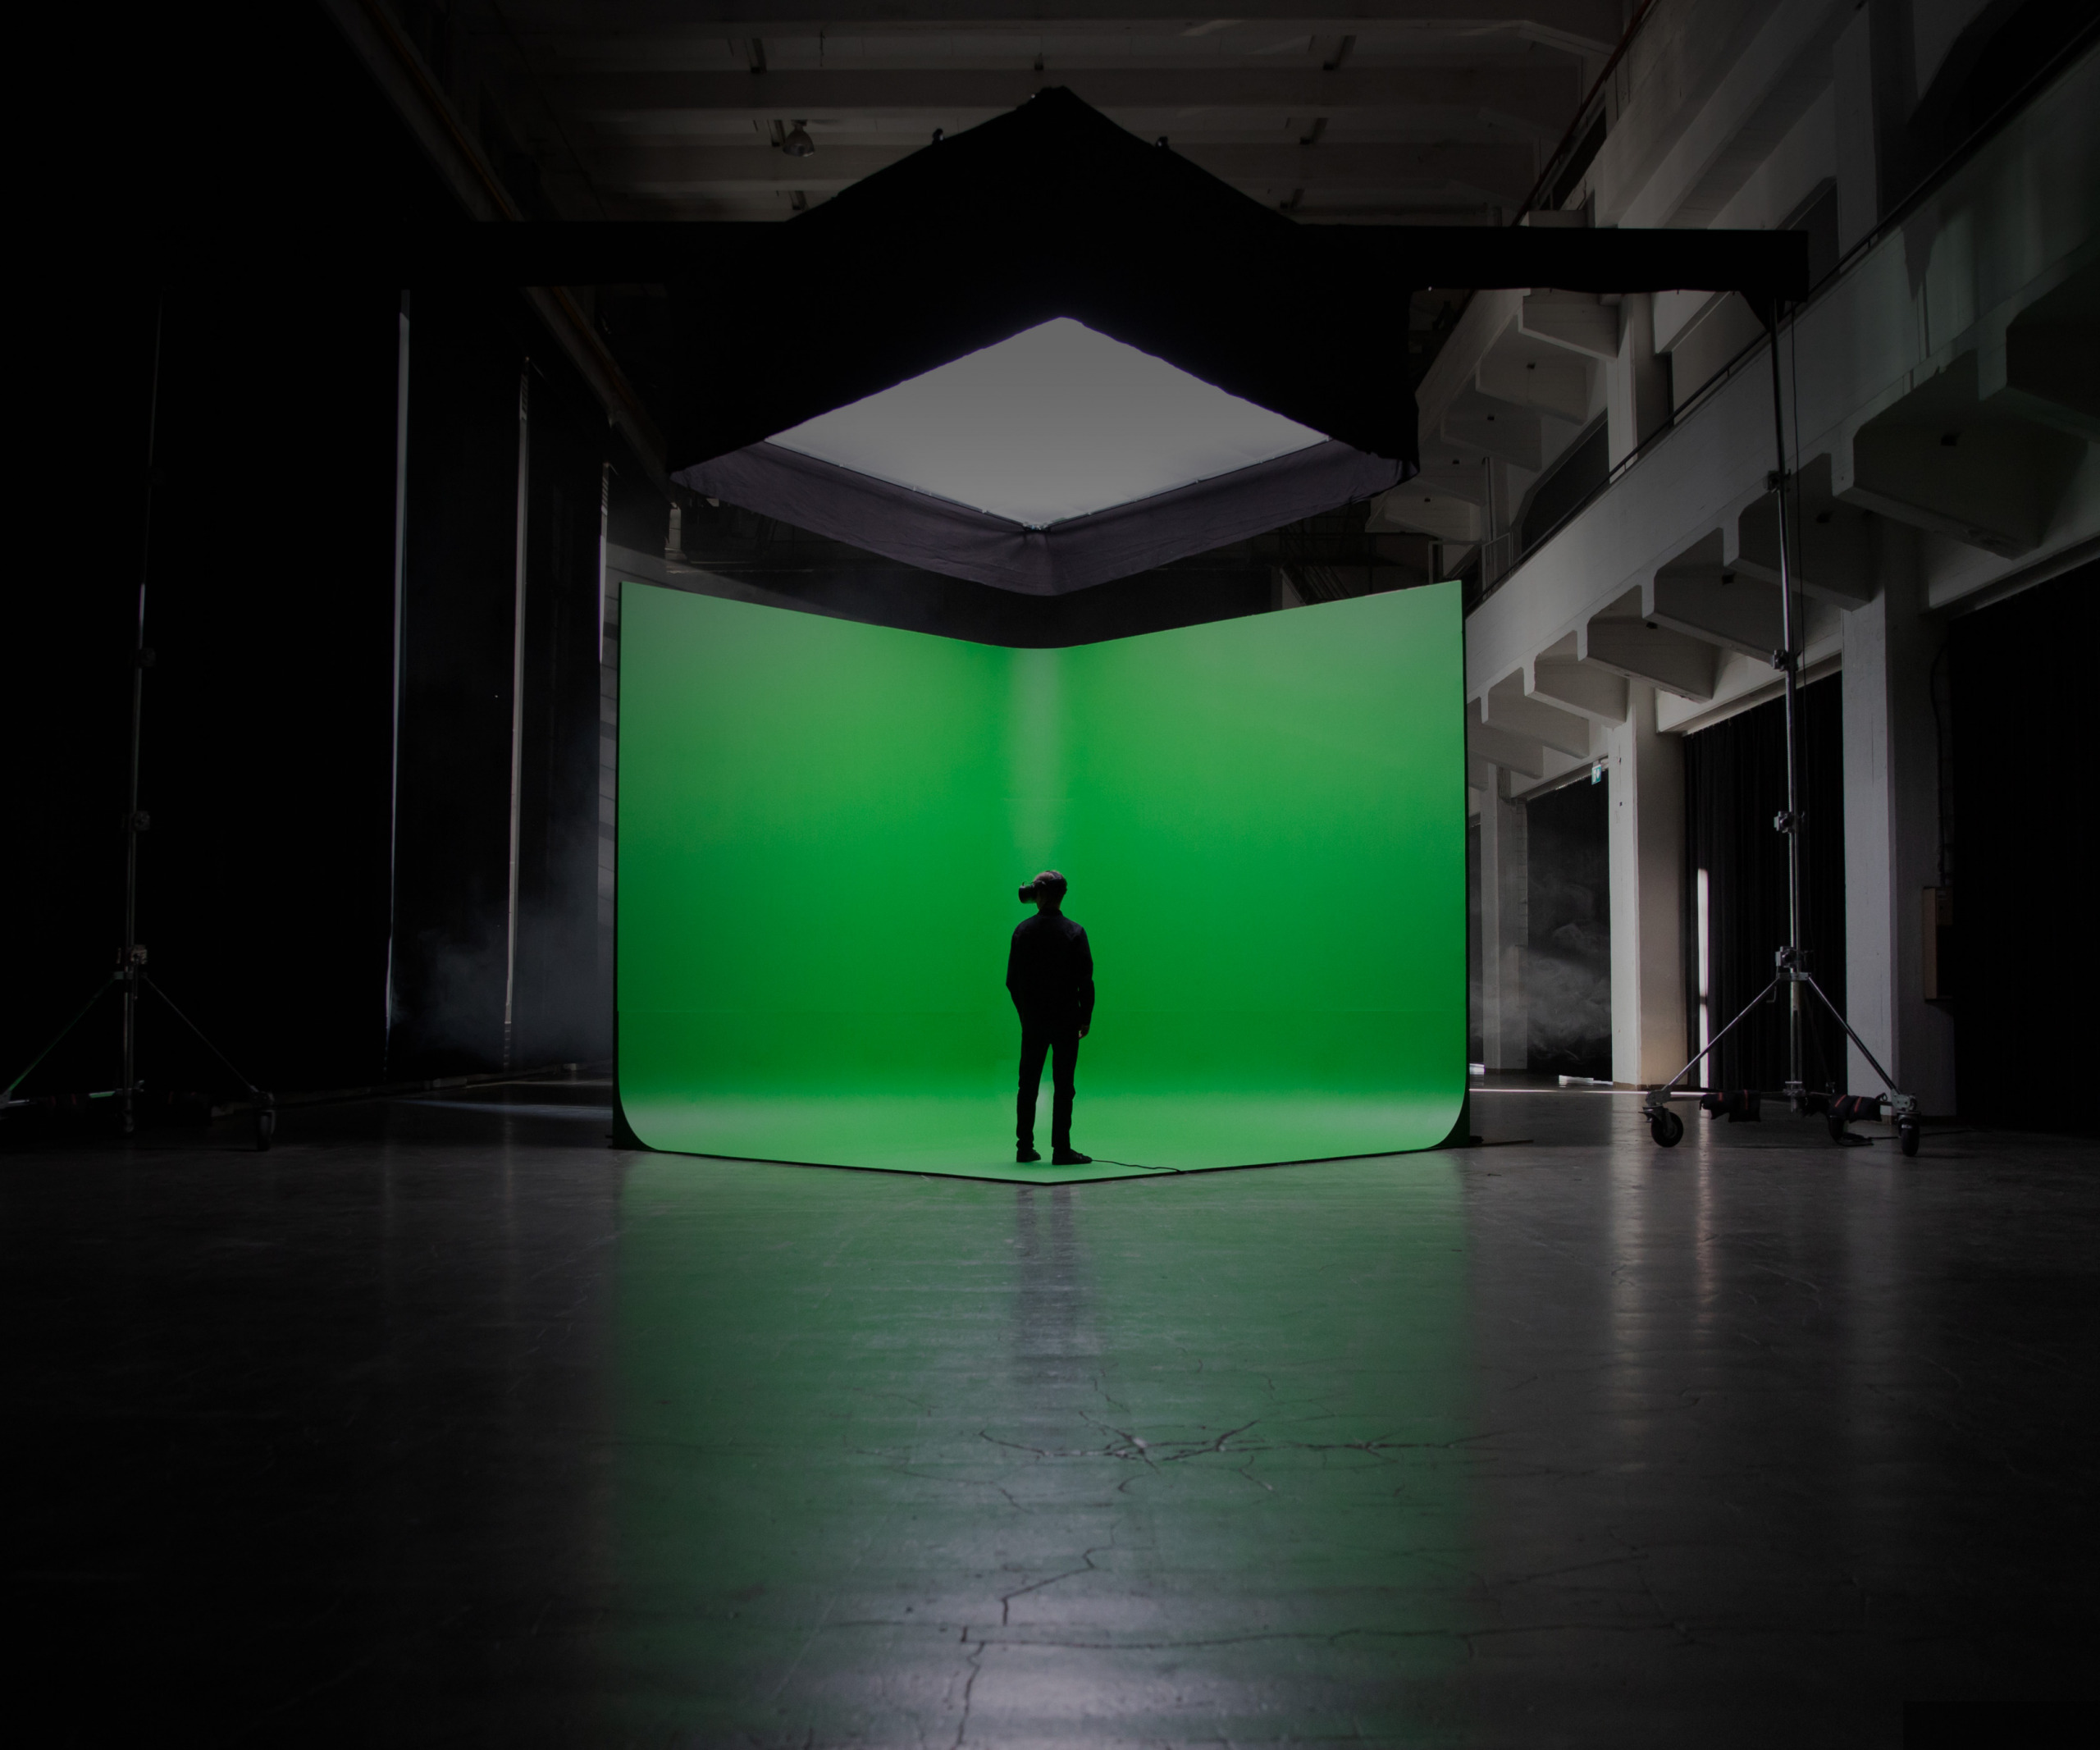 person standing in front of green screen wearing Varjo headset